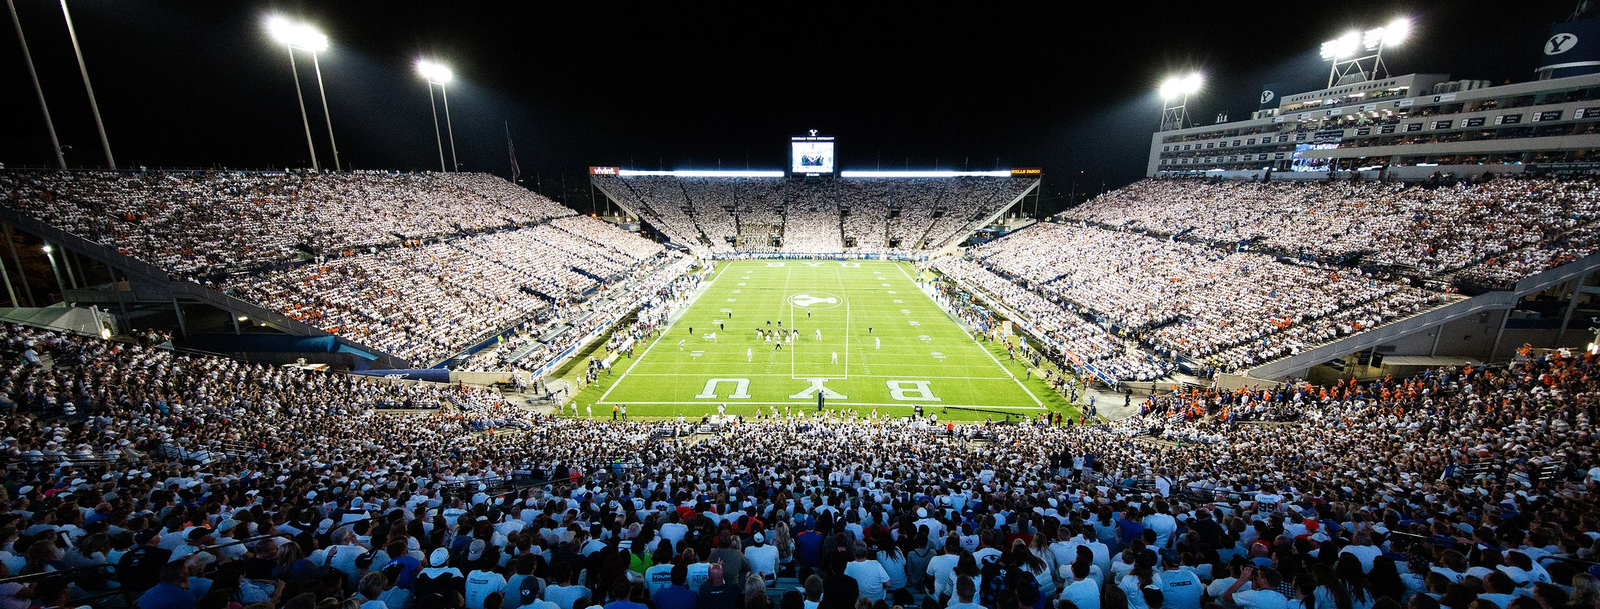 Portland State Vikings at BYU Cougars Football